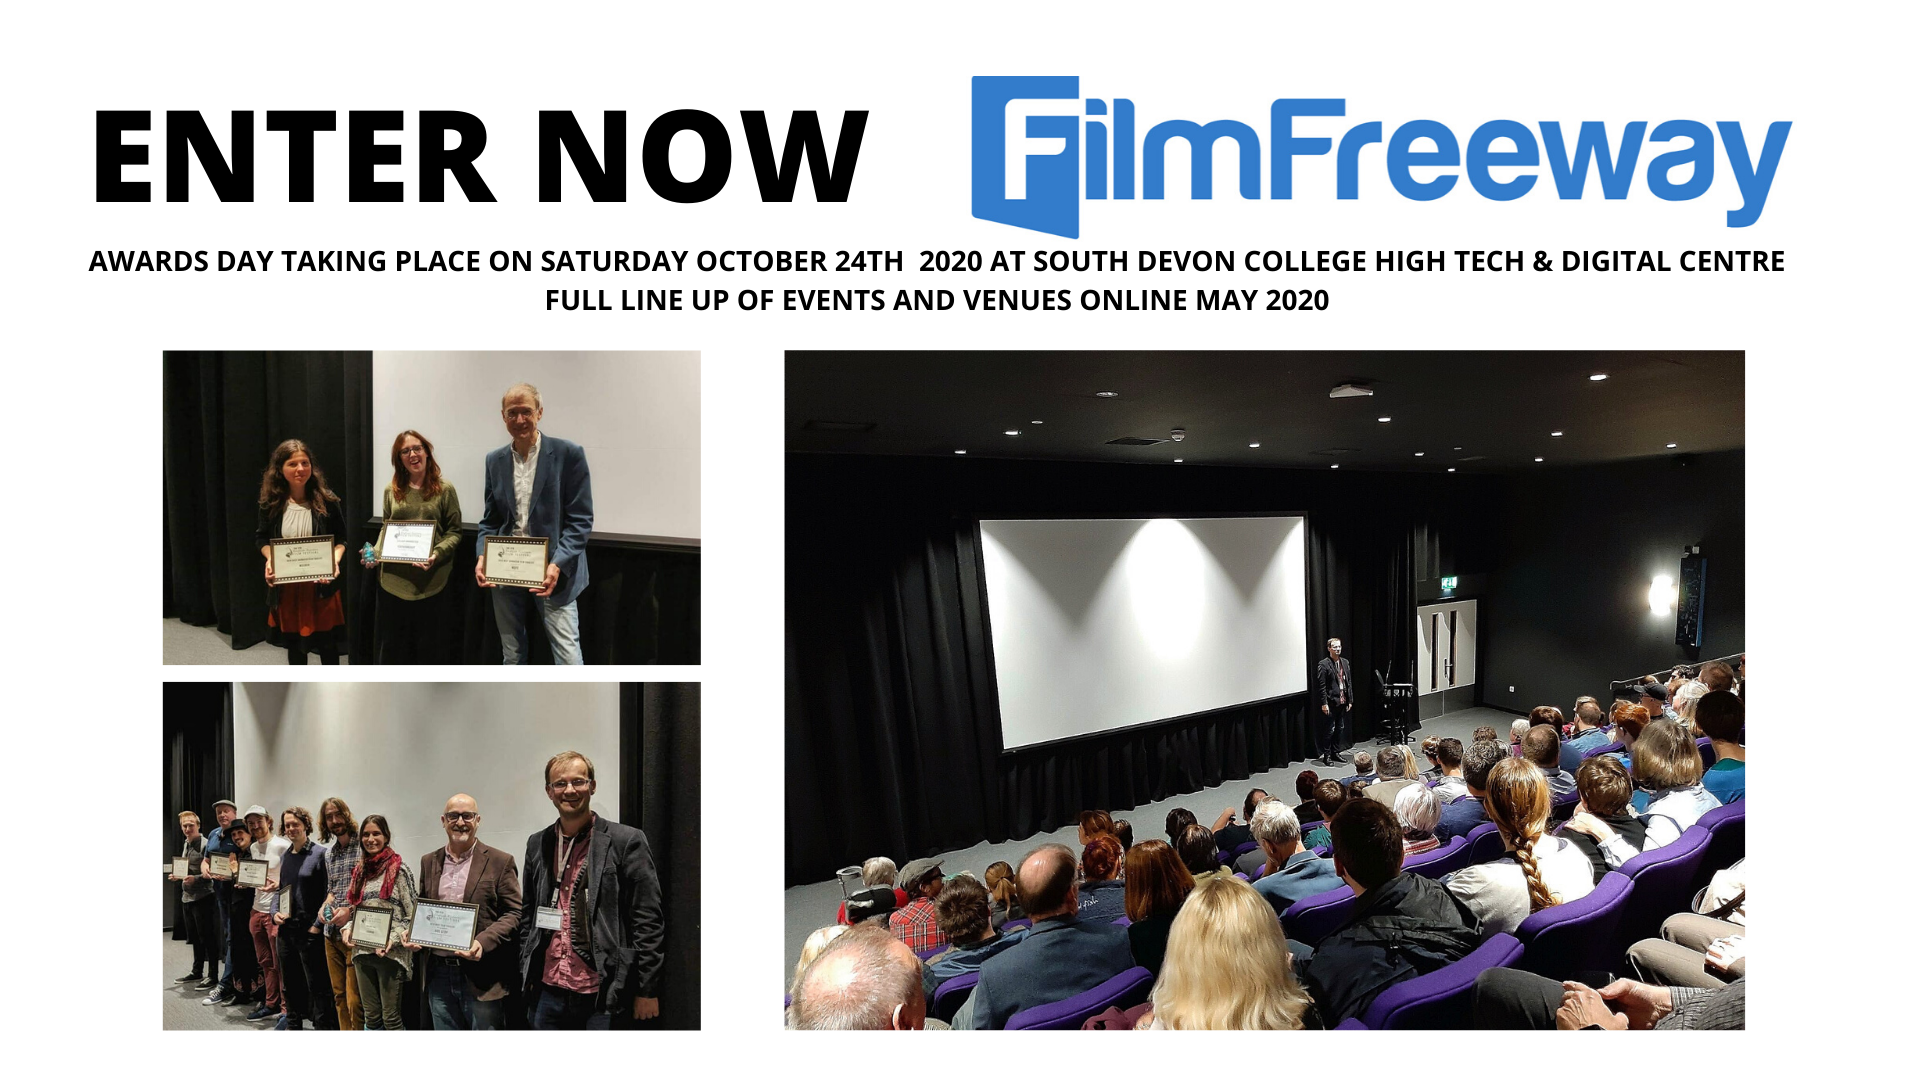 AWARDS DAY TAKING PLACE ON SATURDAY OCTOBER 24TH 2020 AT SOUTH DEVON COLLEGE HIGH TECH & DIGITAL CENTRE